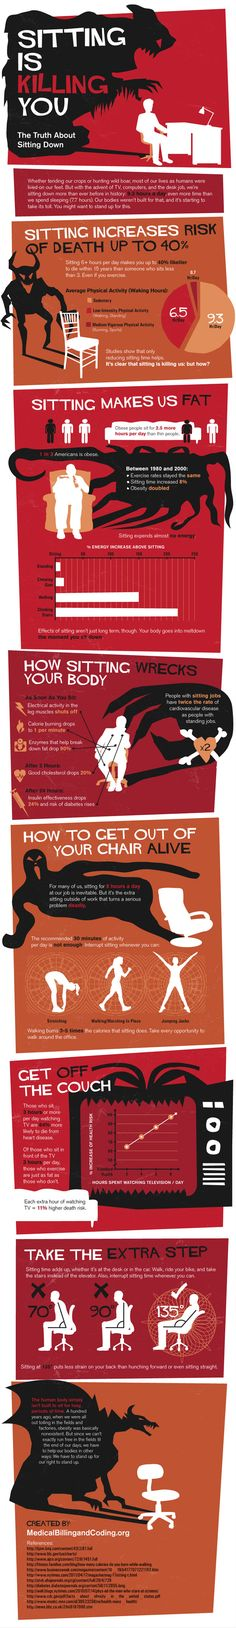 Sitting down is killing us sit, chair, the office, thought, kill, standing desks, health, people, 15 years